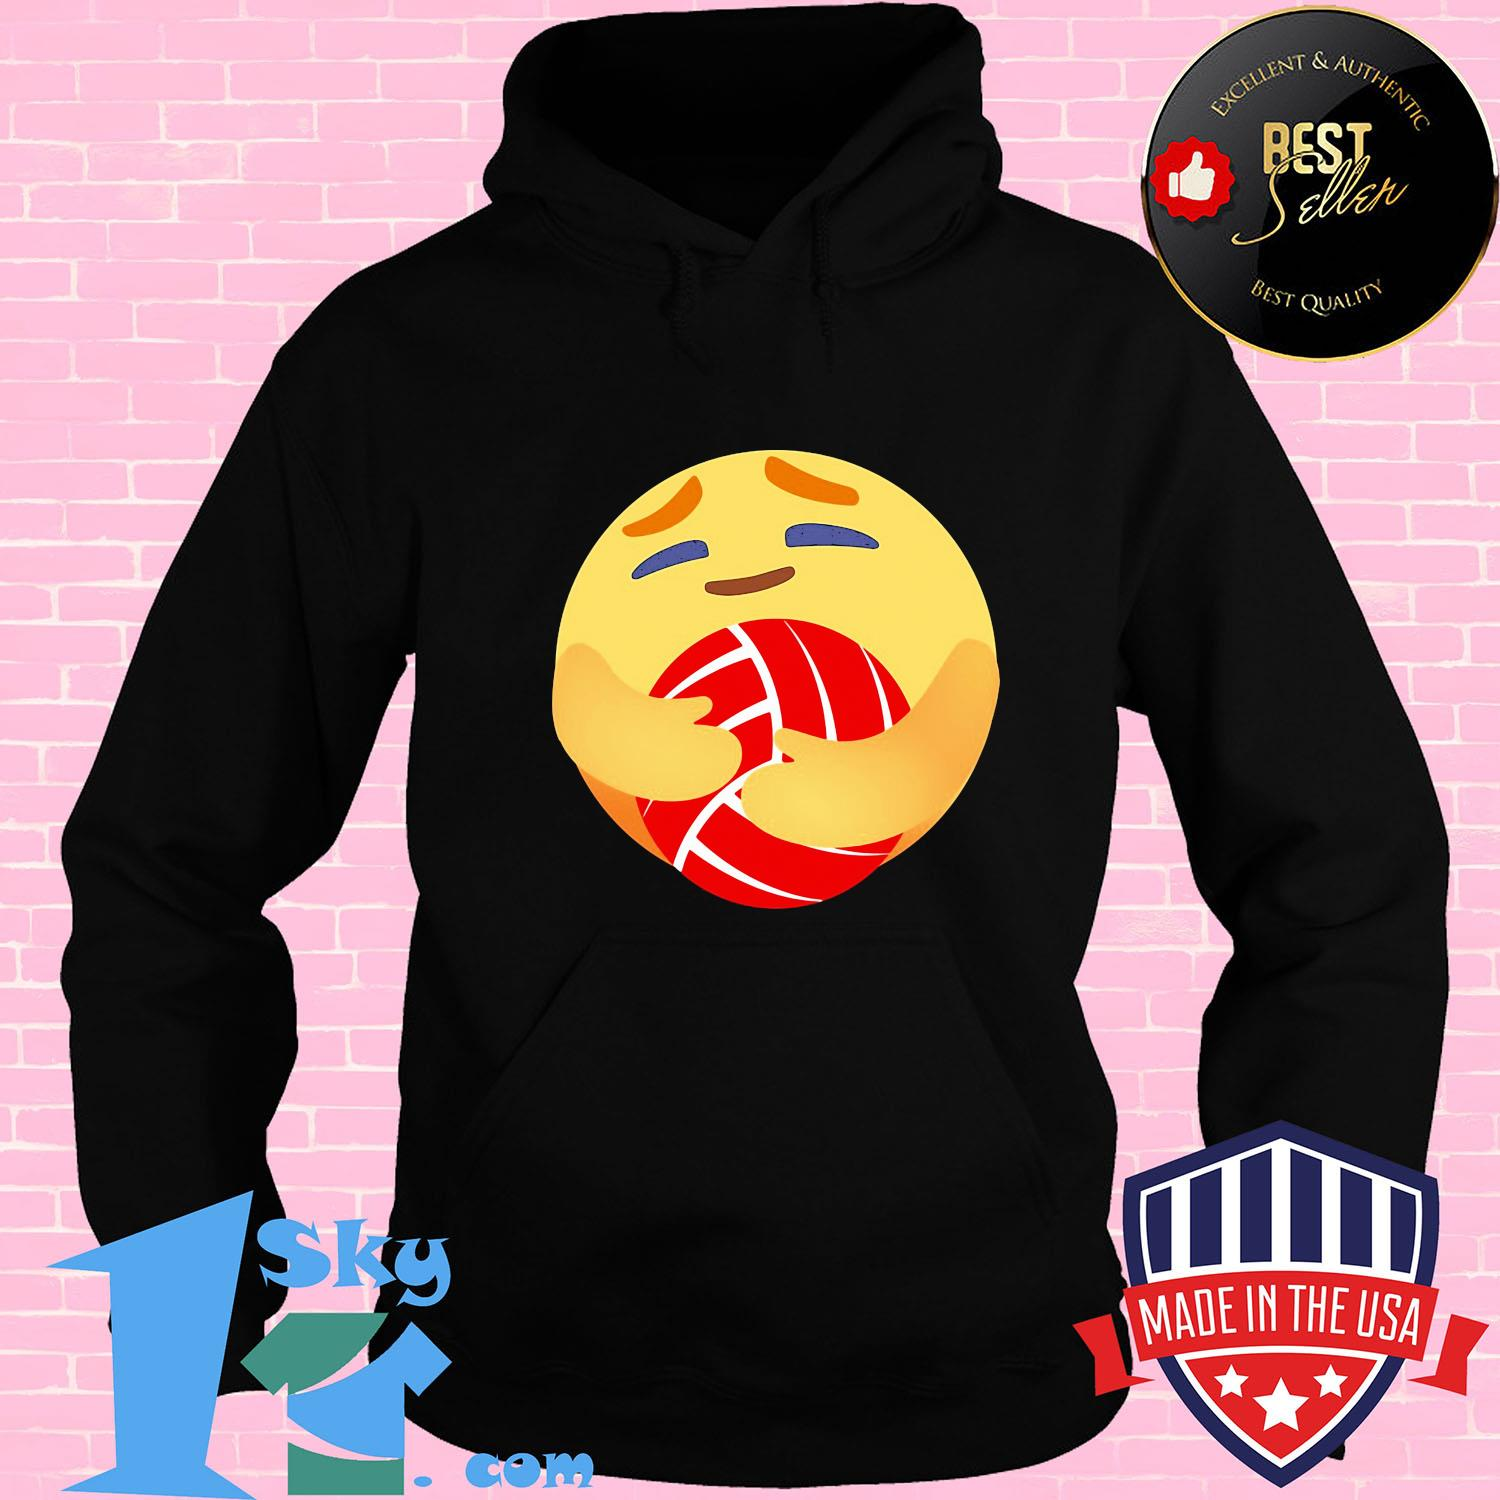 e4e73661 icon hug care volleyball shirt hoodie - Shop trending - We offer all trend shirts - 1SkyTee